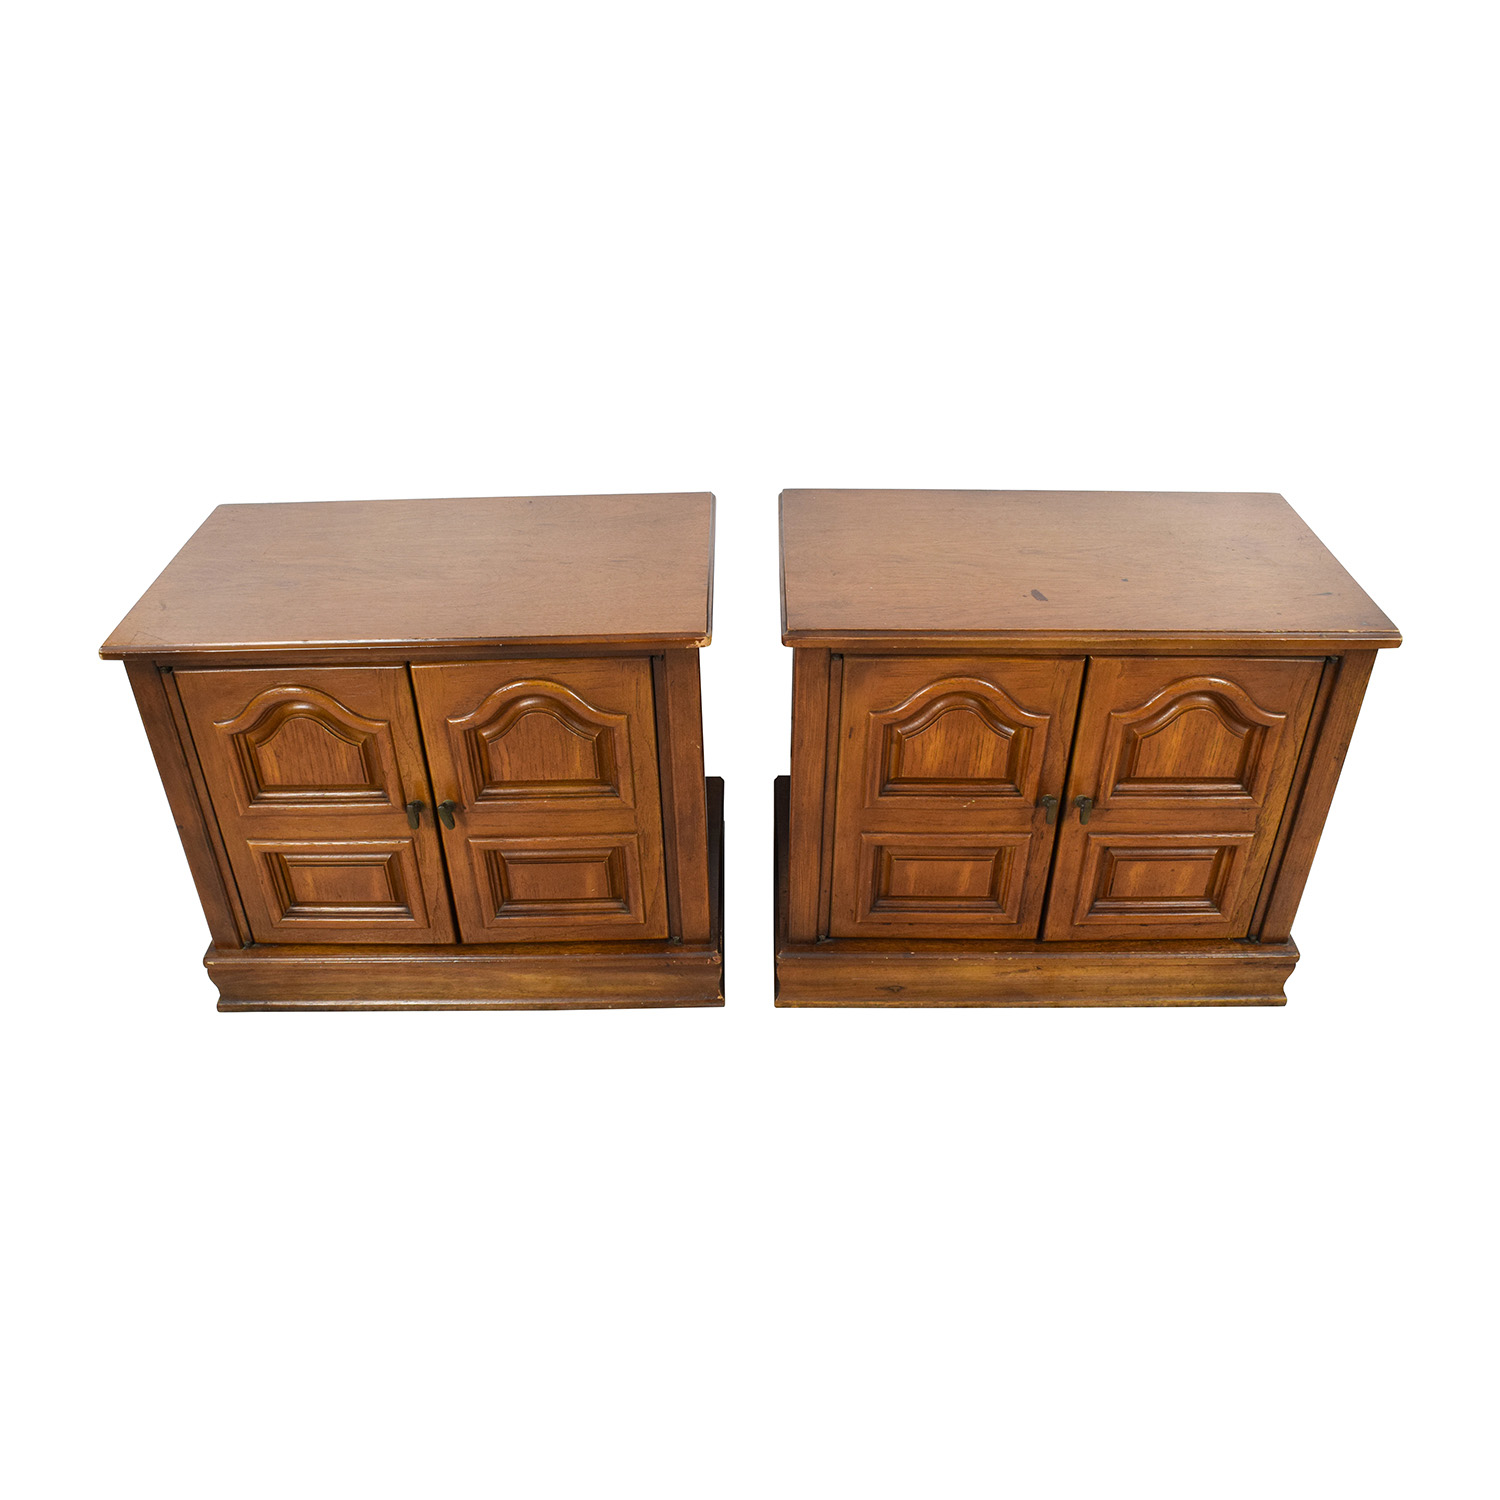 buy Wooden Carved Nightstands